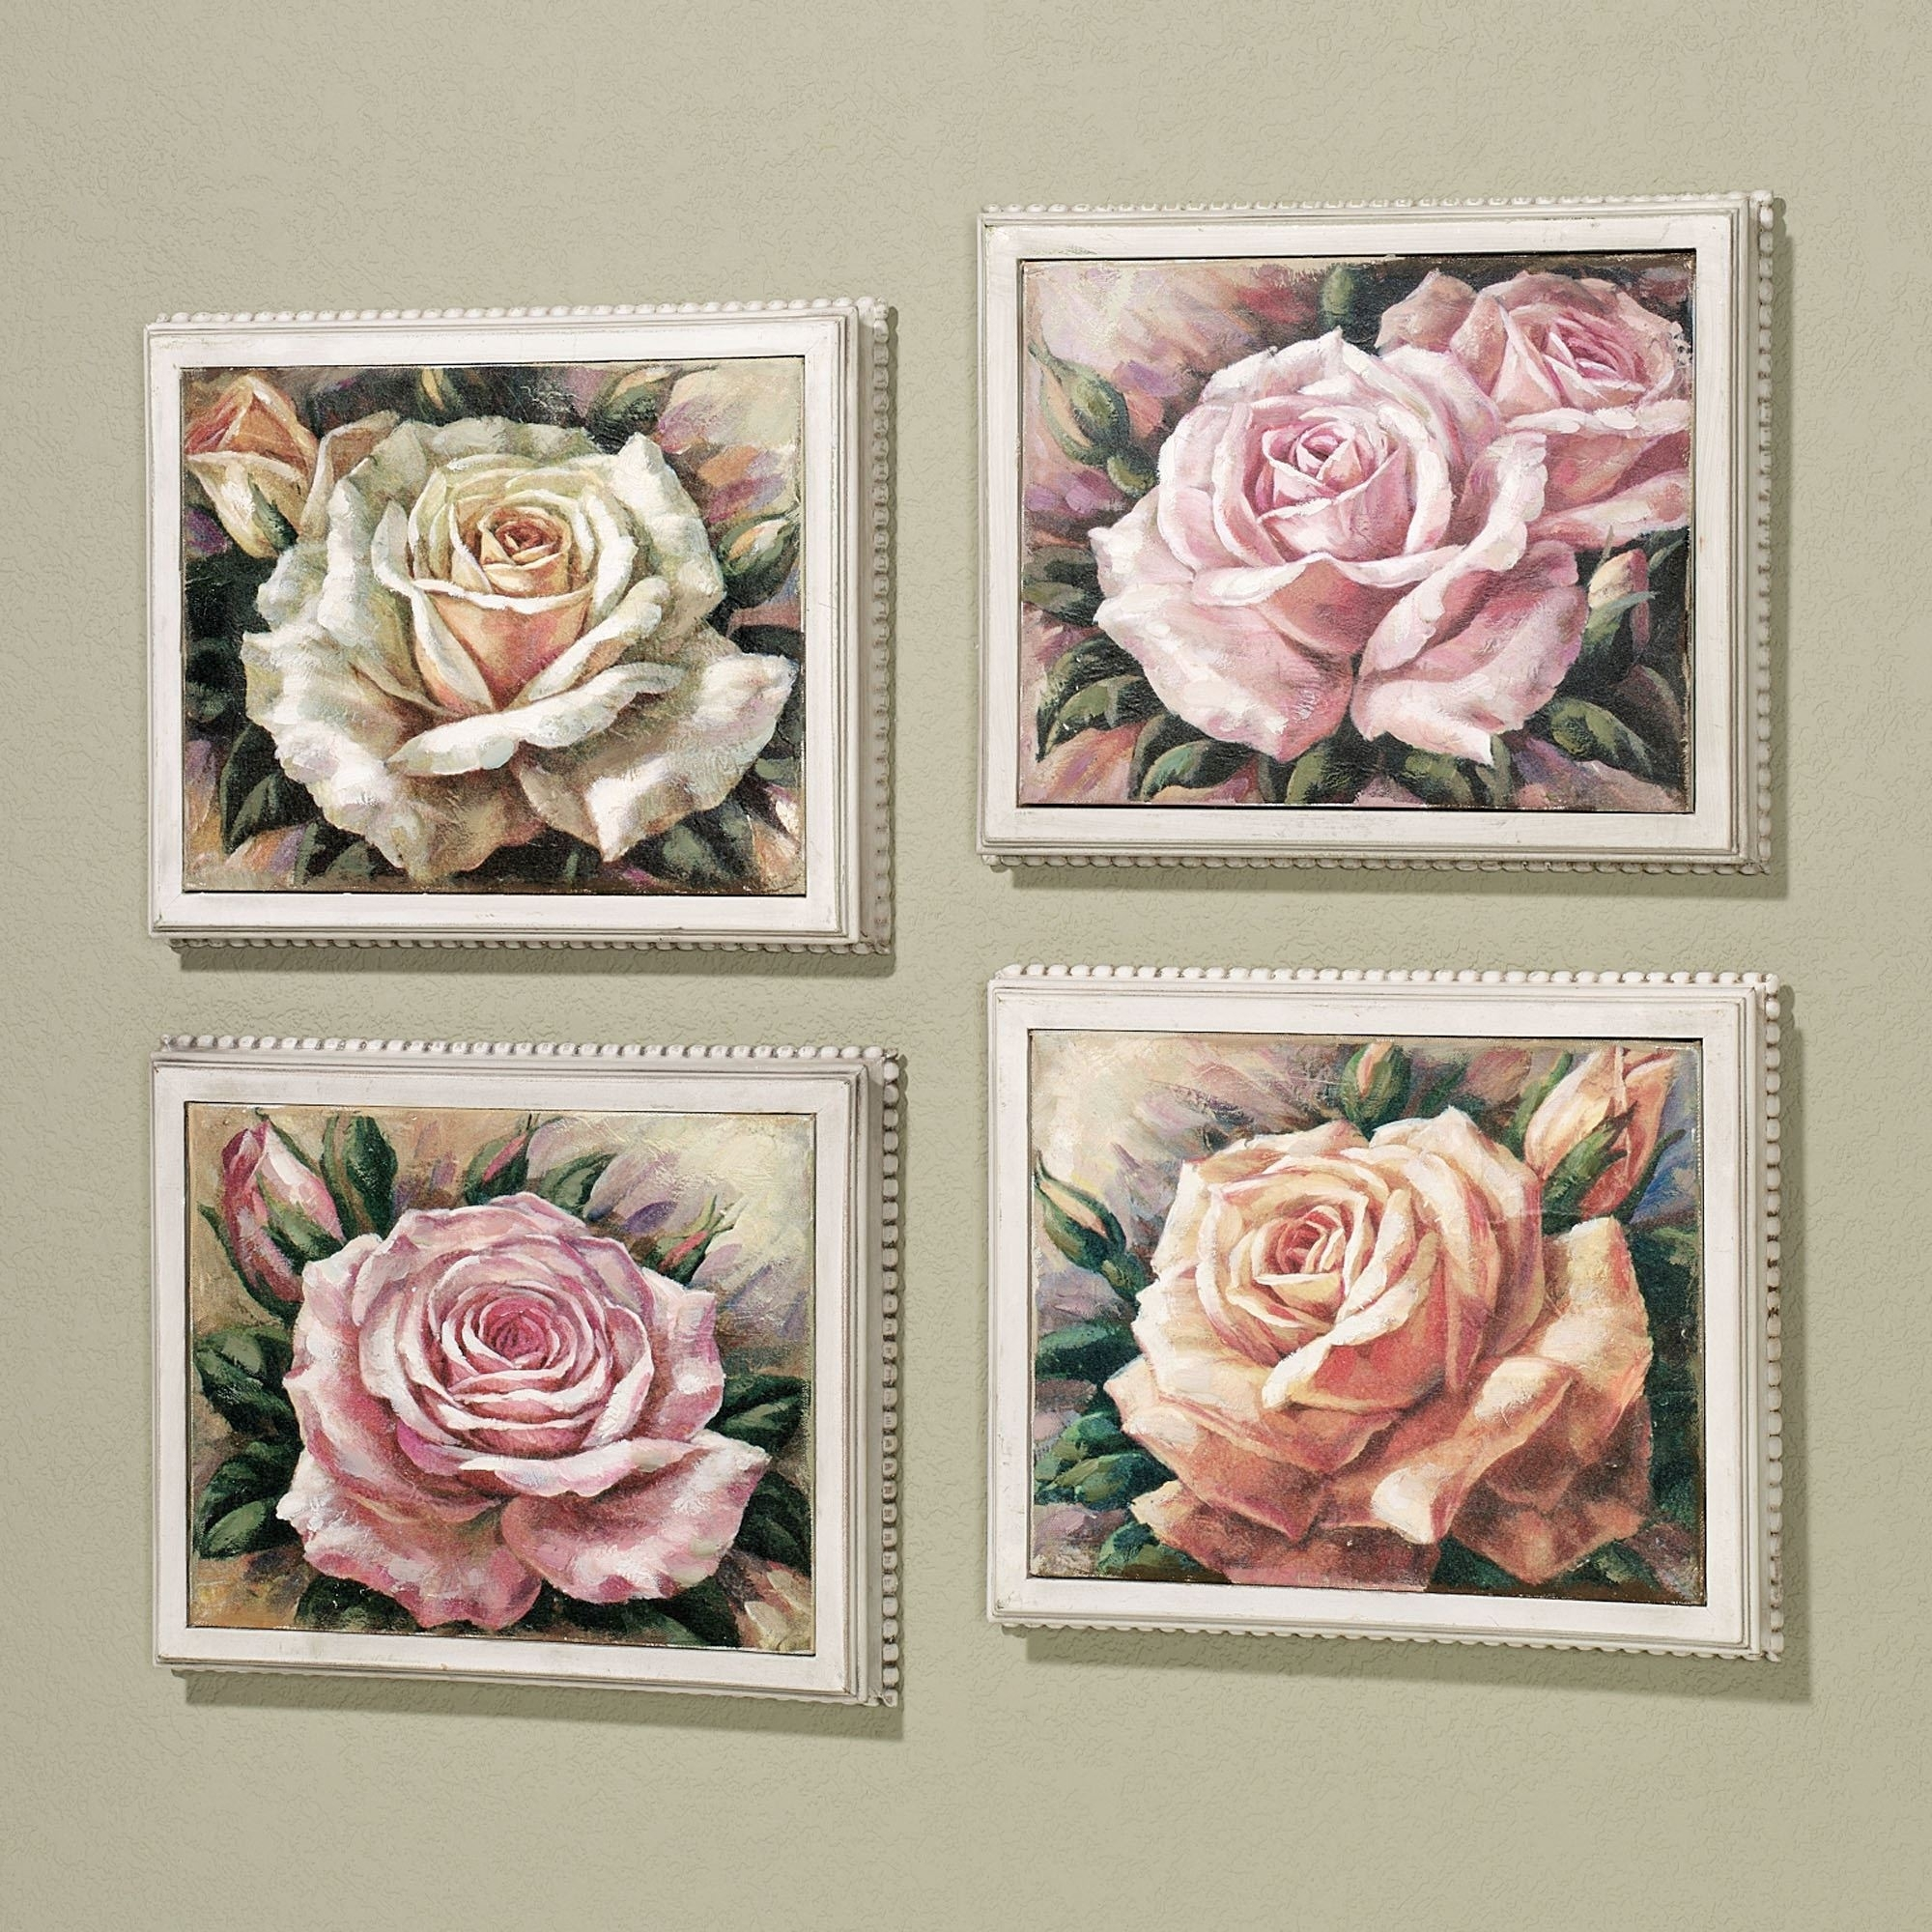 Blooming Roses Framed Canvas Wall Art Set Intended For 2017 Roses Canvas Wall Art (View 8 of 15)